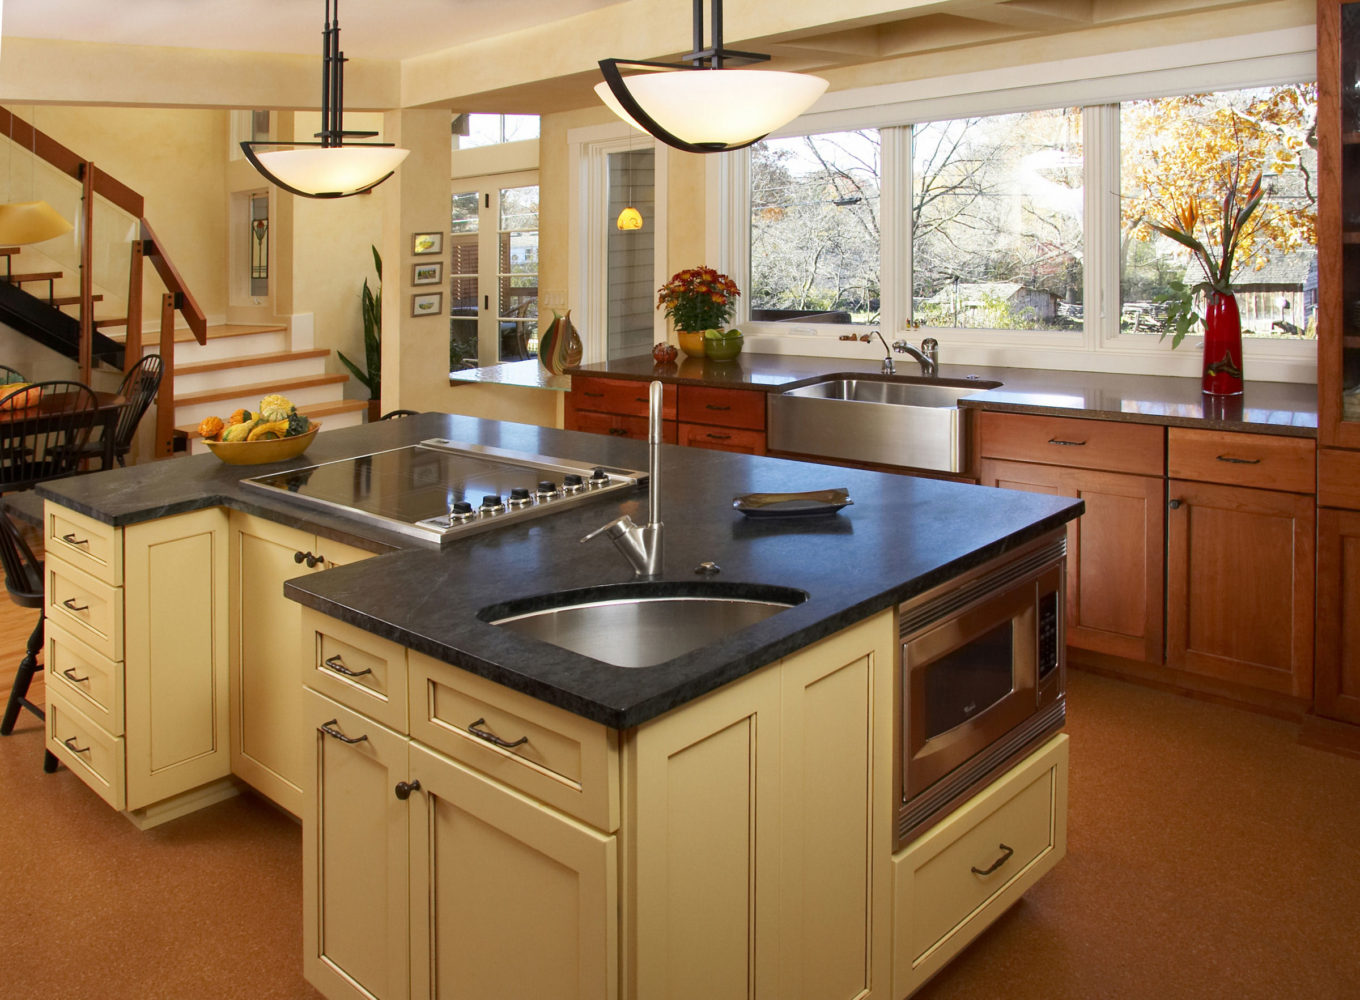 CWP - Beautiful Cabinetry and Countertops